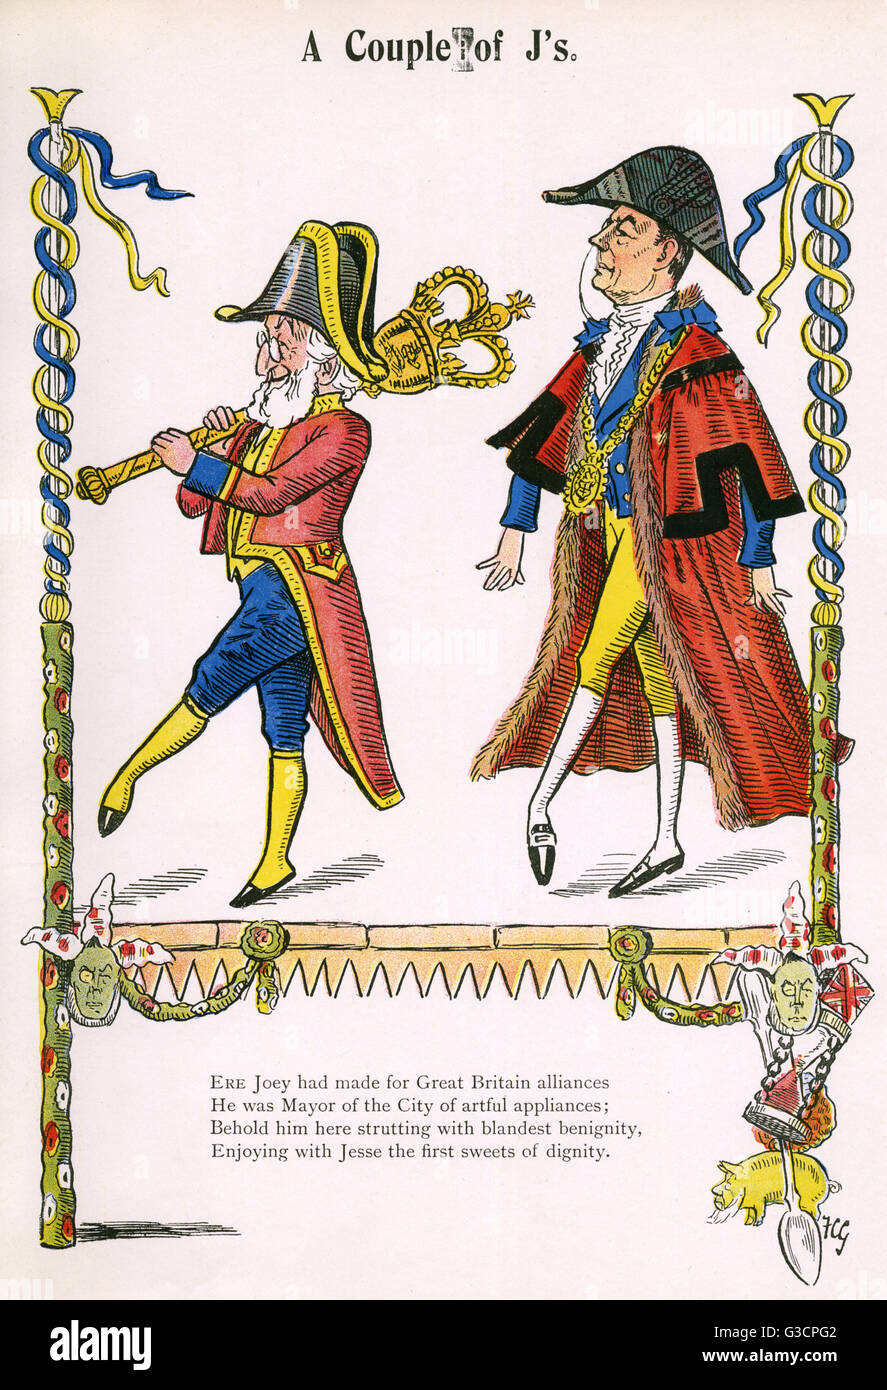 'A Couple of J's'. Serjeant-at-Arms Sir John Voce Moore (18261904), English businessman and Lord Mayor - Stock Image